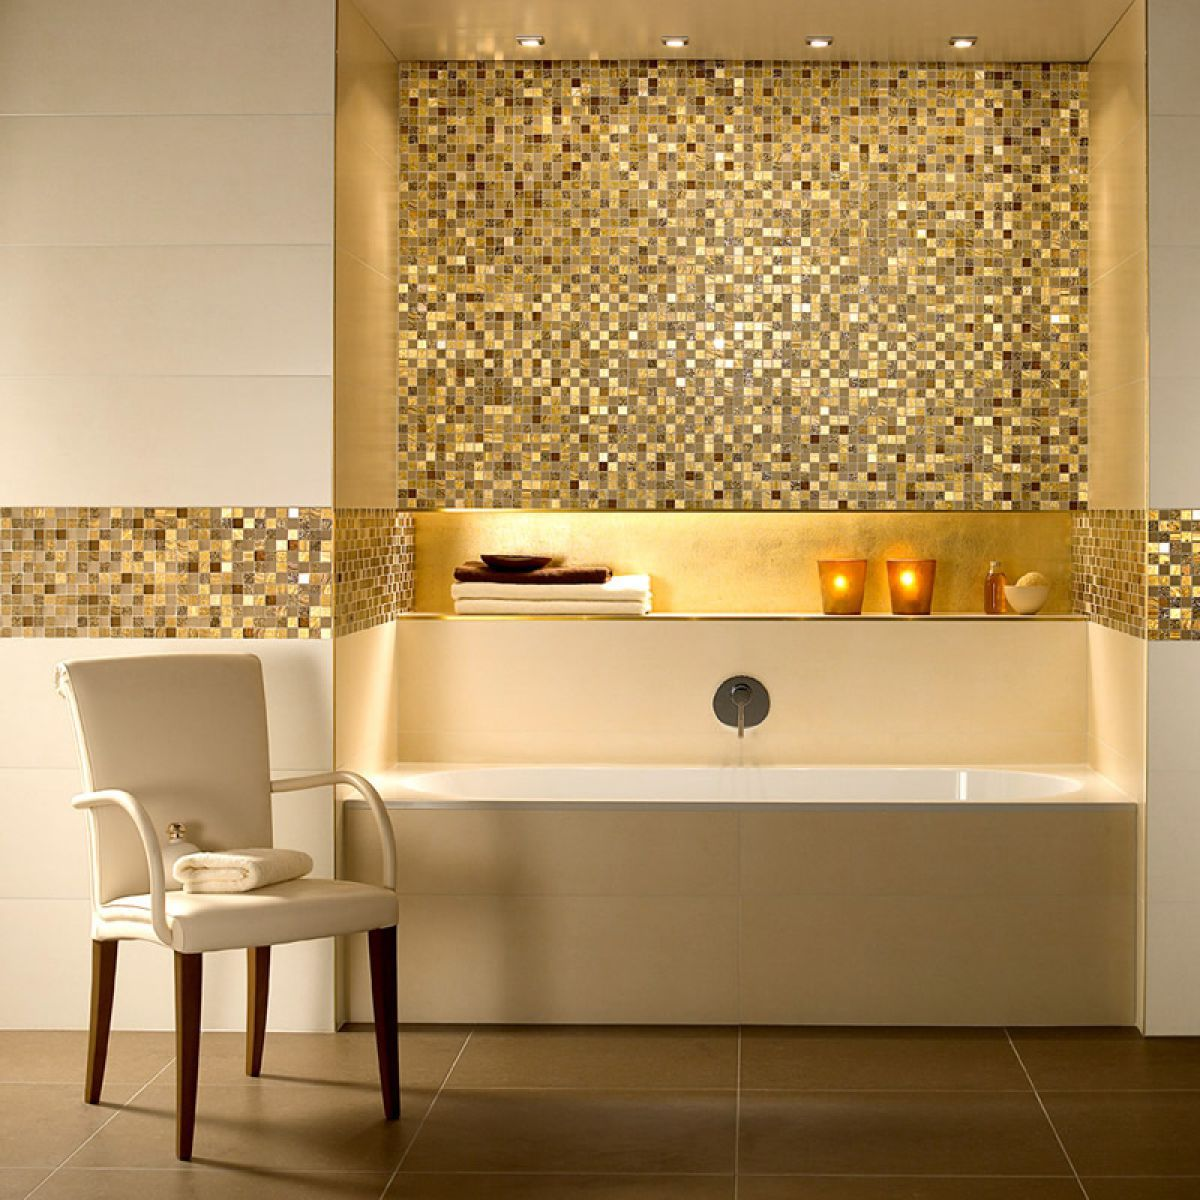 Glitter Bathroom Tiles Uk mosaic tile bath panel - google search | bathroom new house